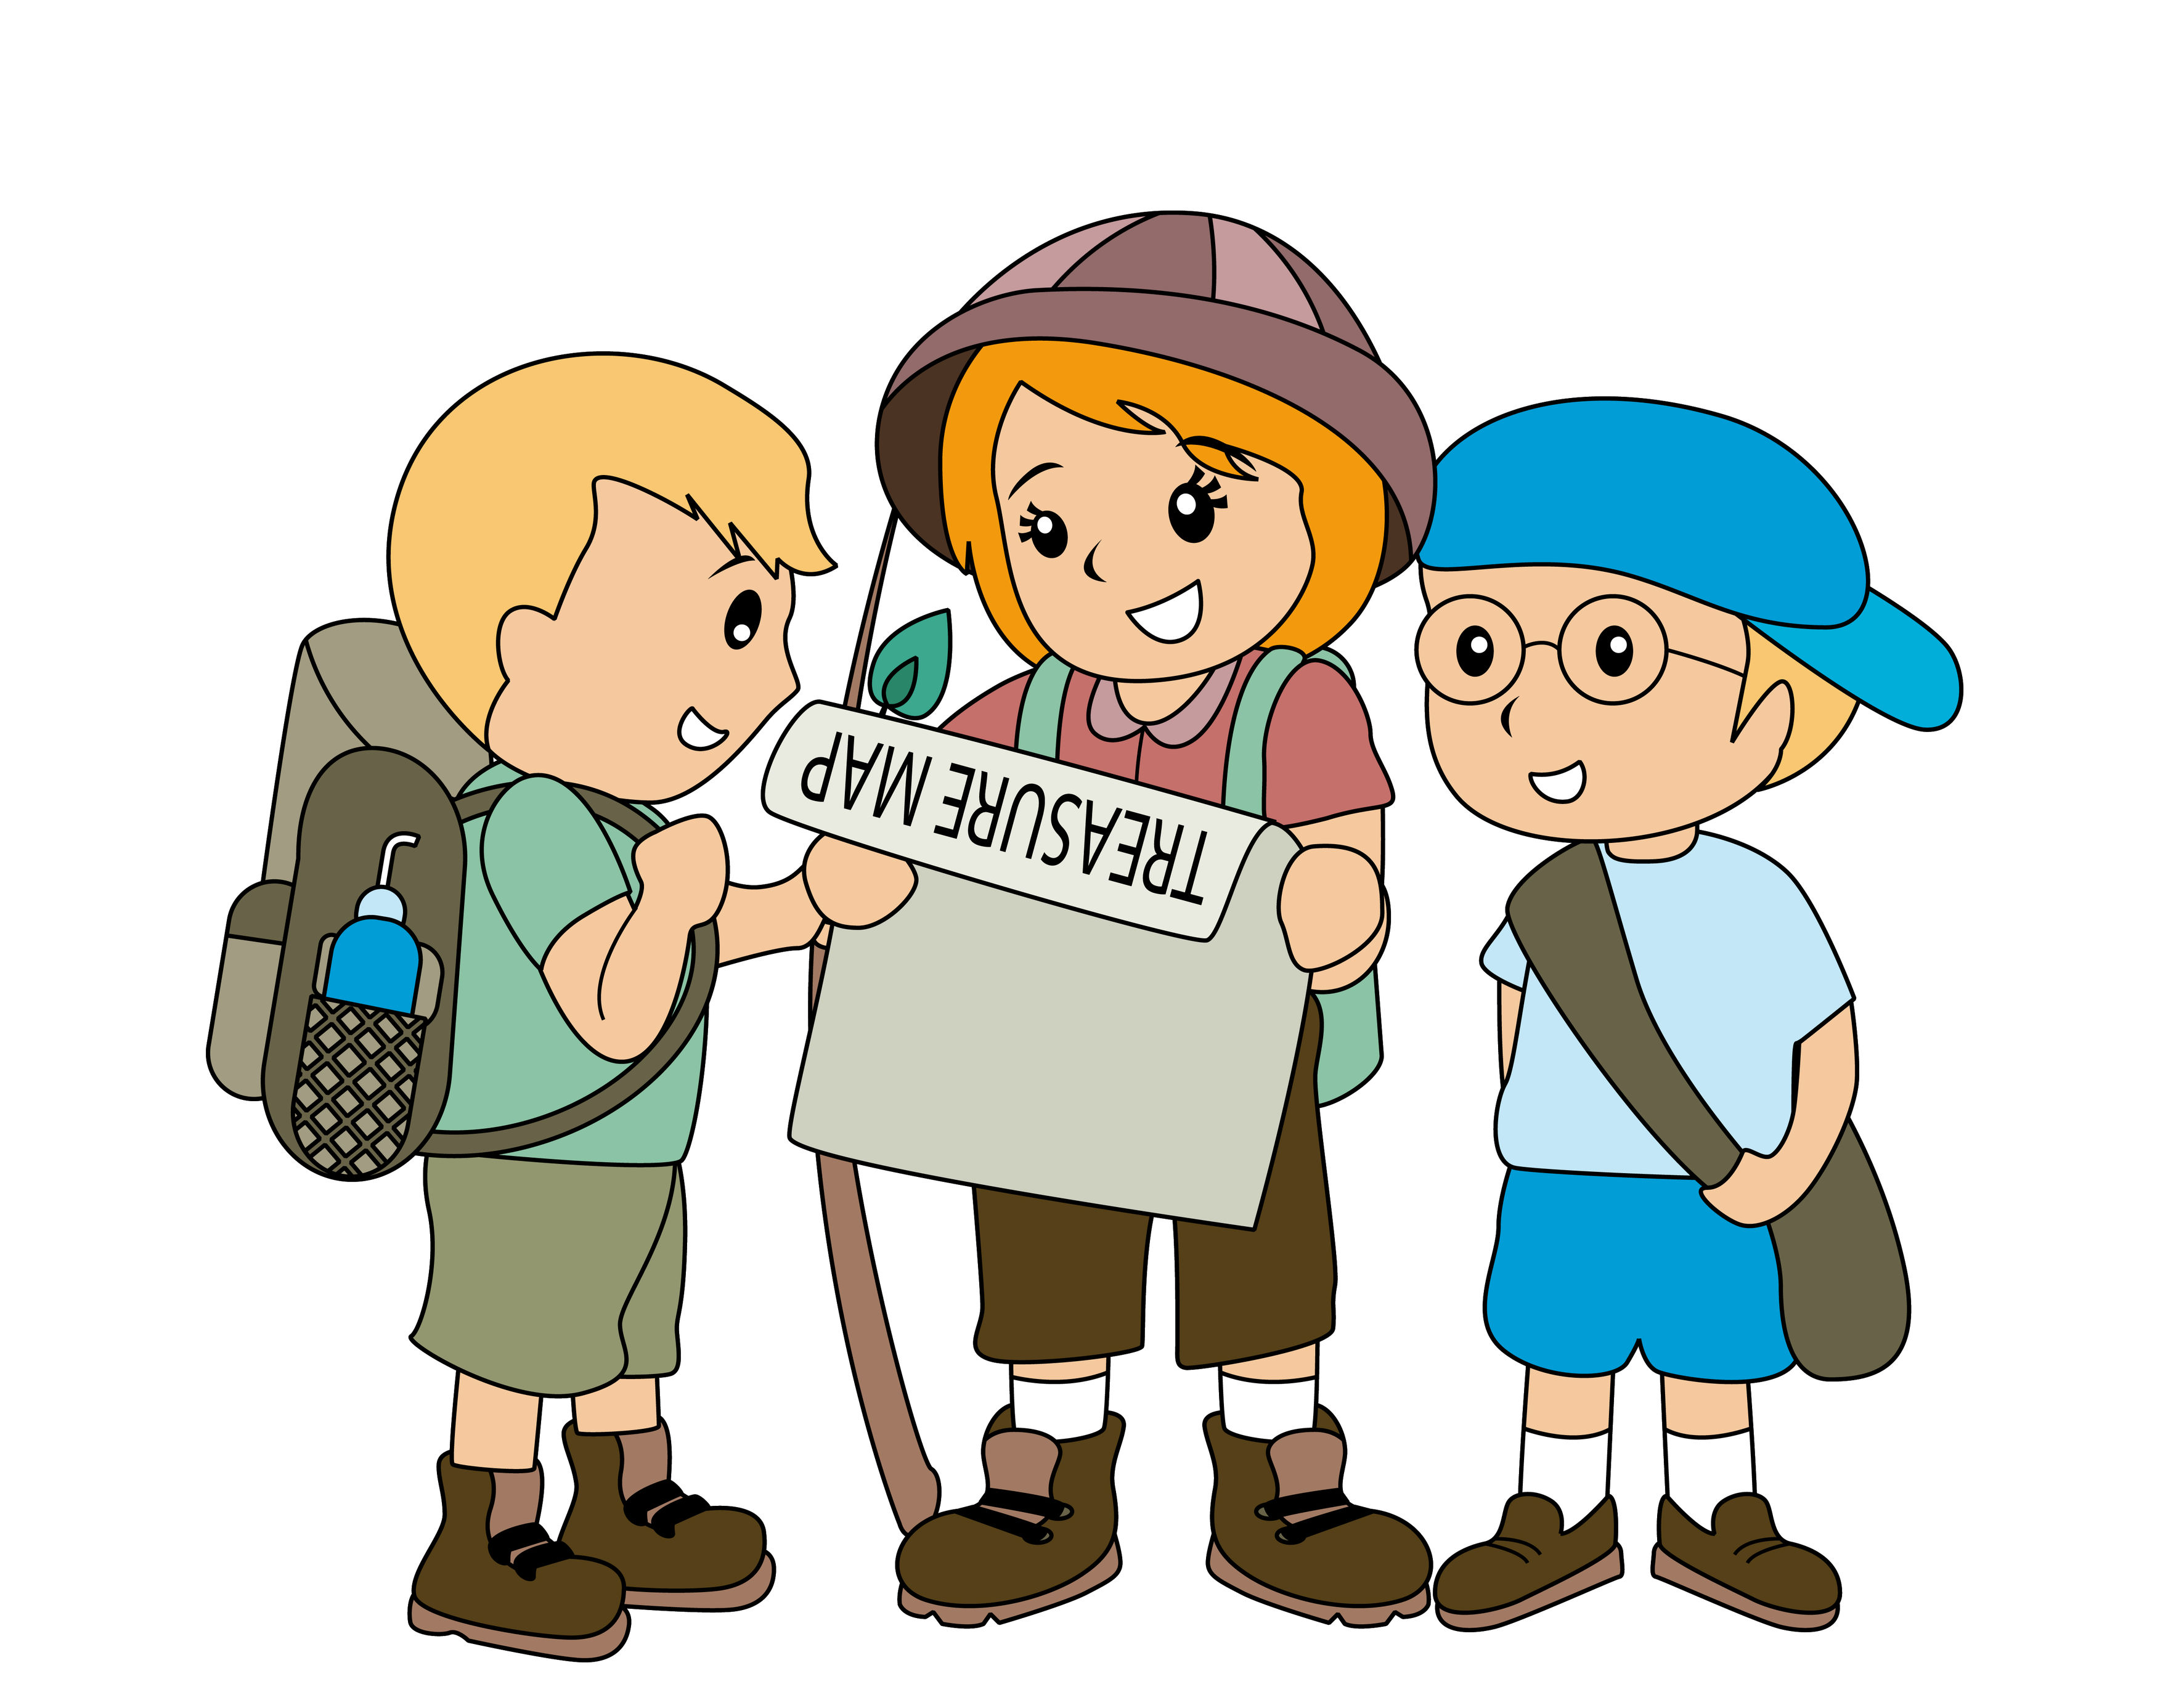 Scavenger hunt clipart childrens. February woolacombe mortehoe voice